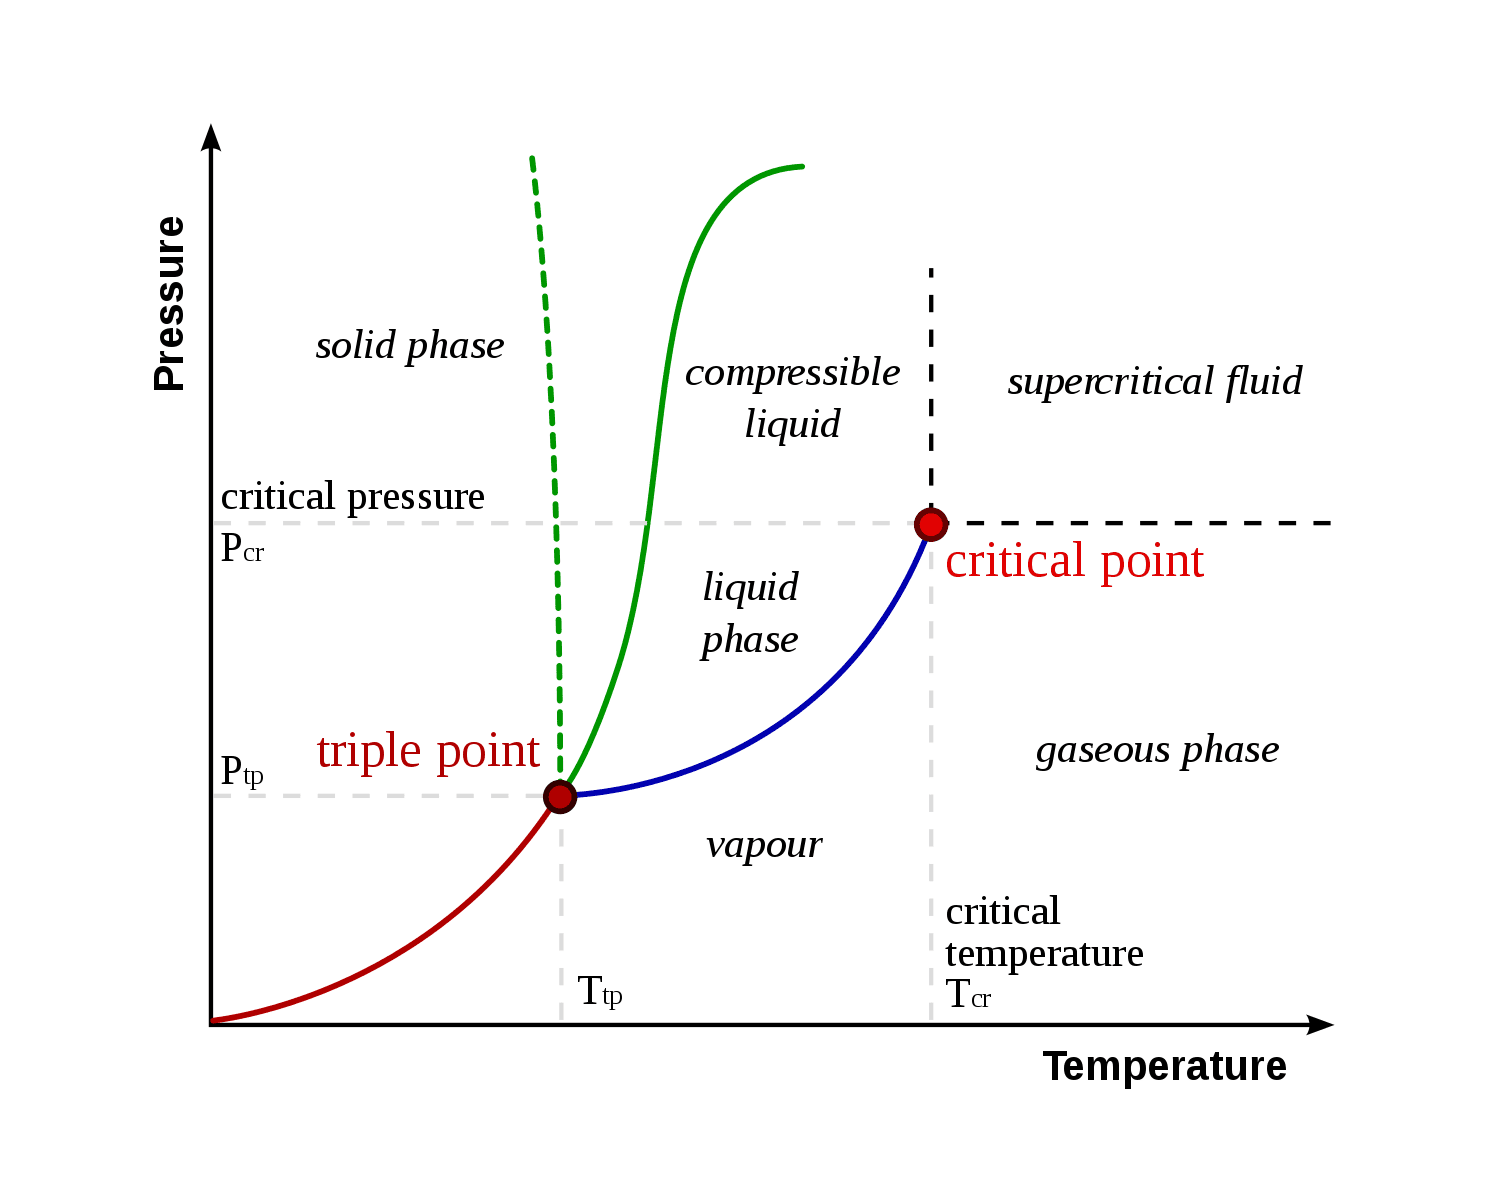 normal boiling point phase diagram yamaha warrior 350 wire triple definition and example chemistry